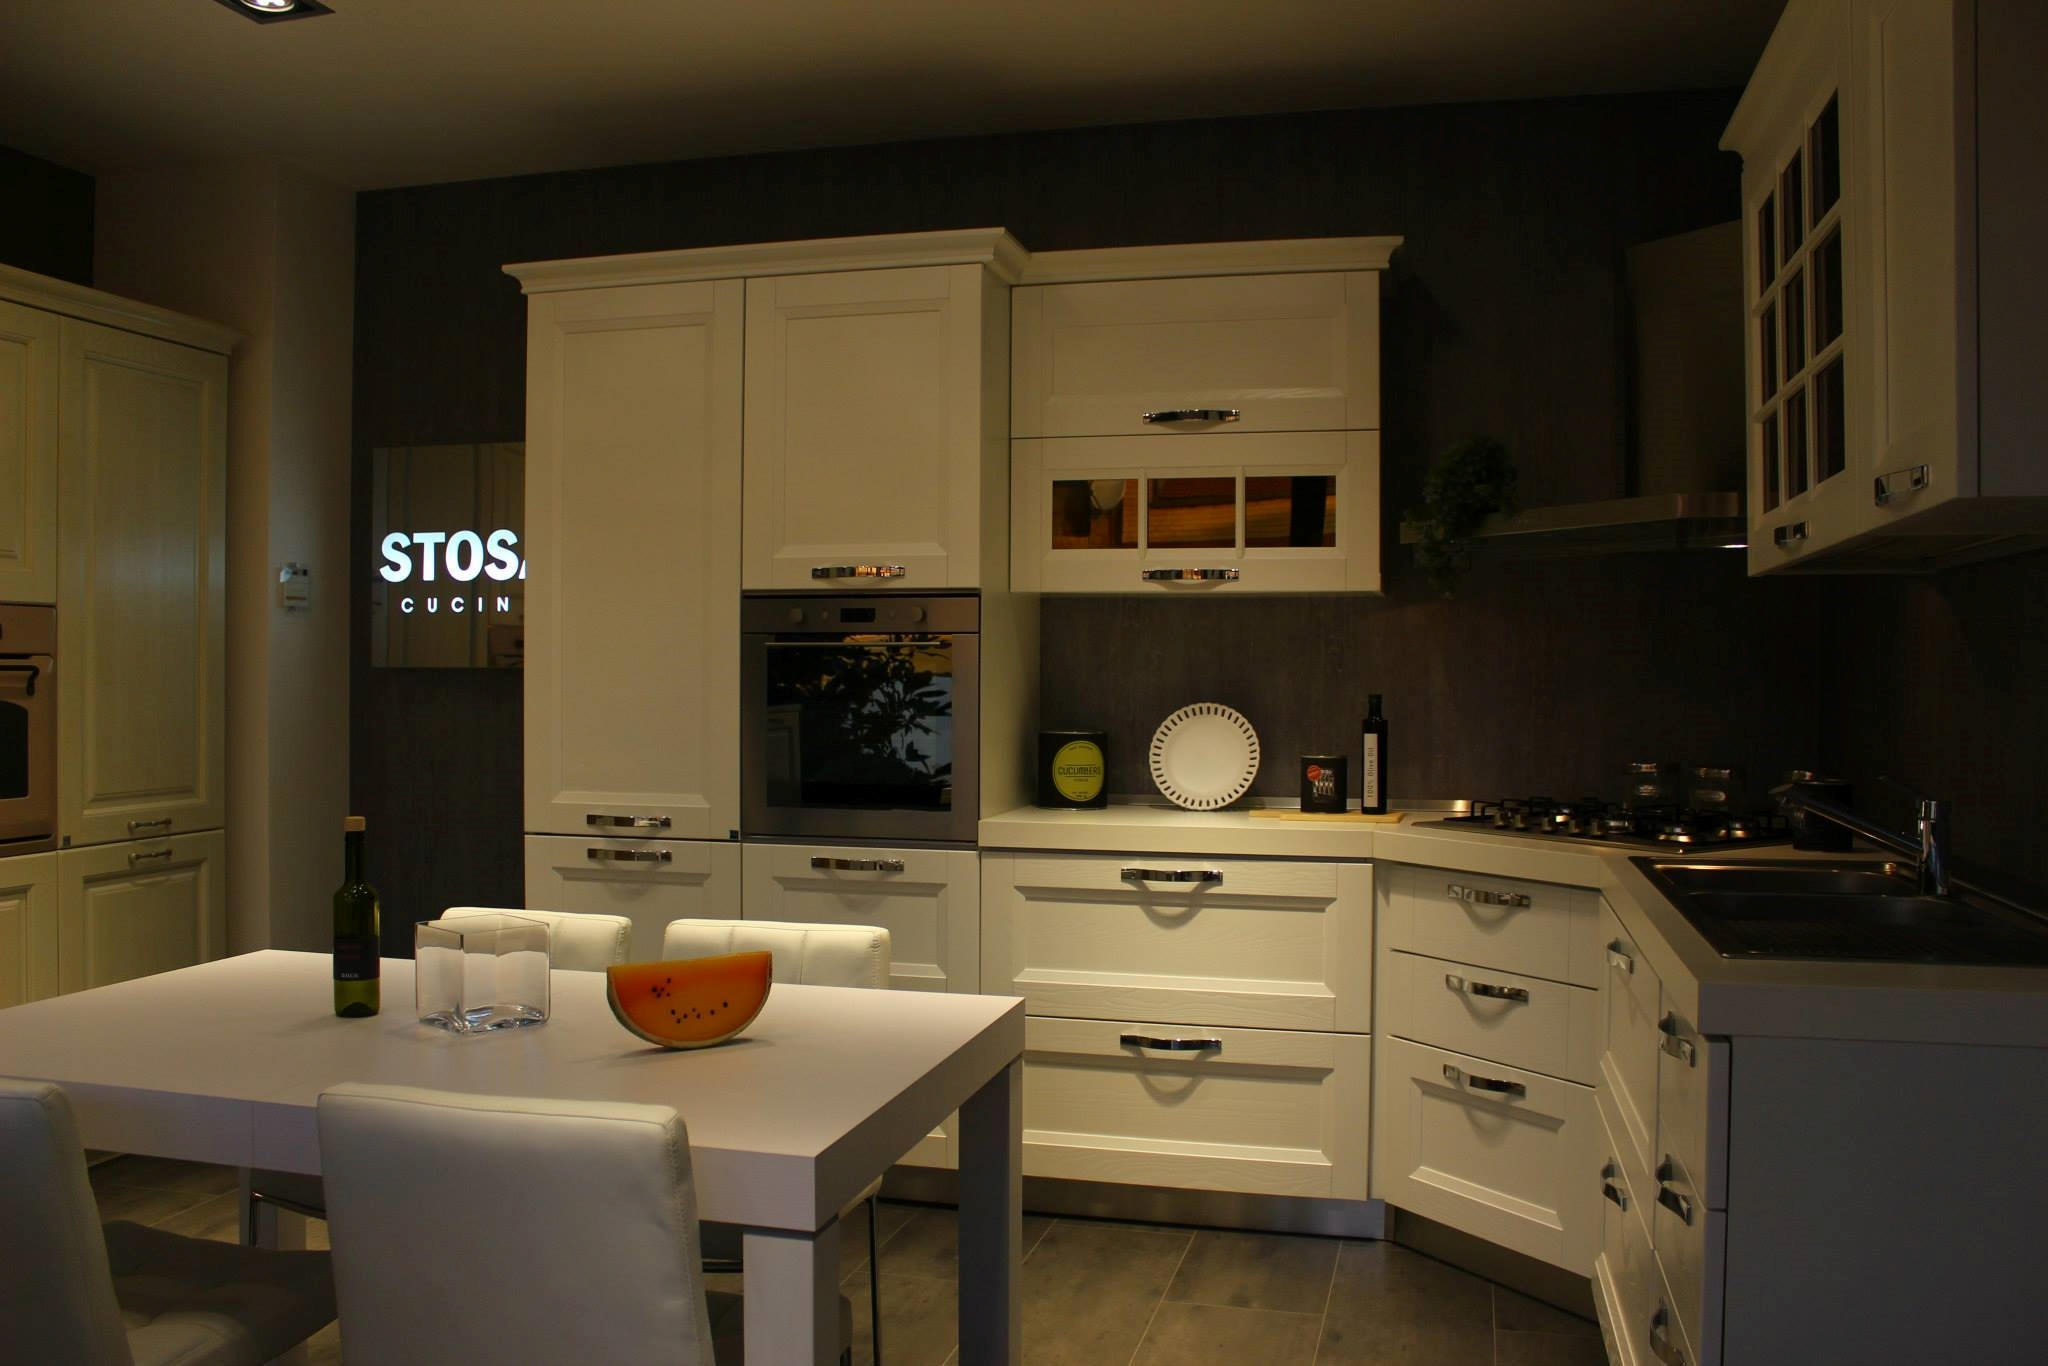 Cucina stosa beverly gallery of stosa bring laminato tranch perla milly ante grigio roccia - Cucina stosa beverly ...